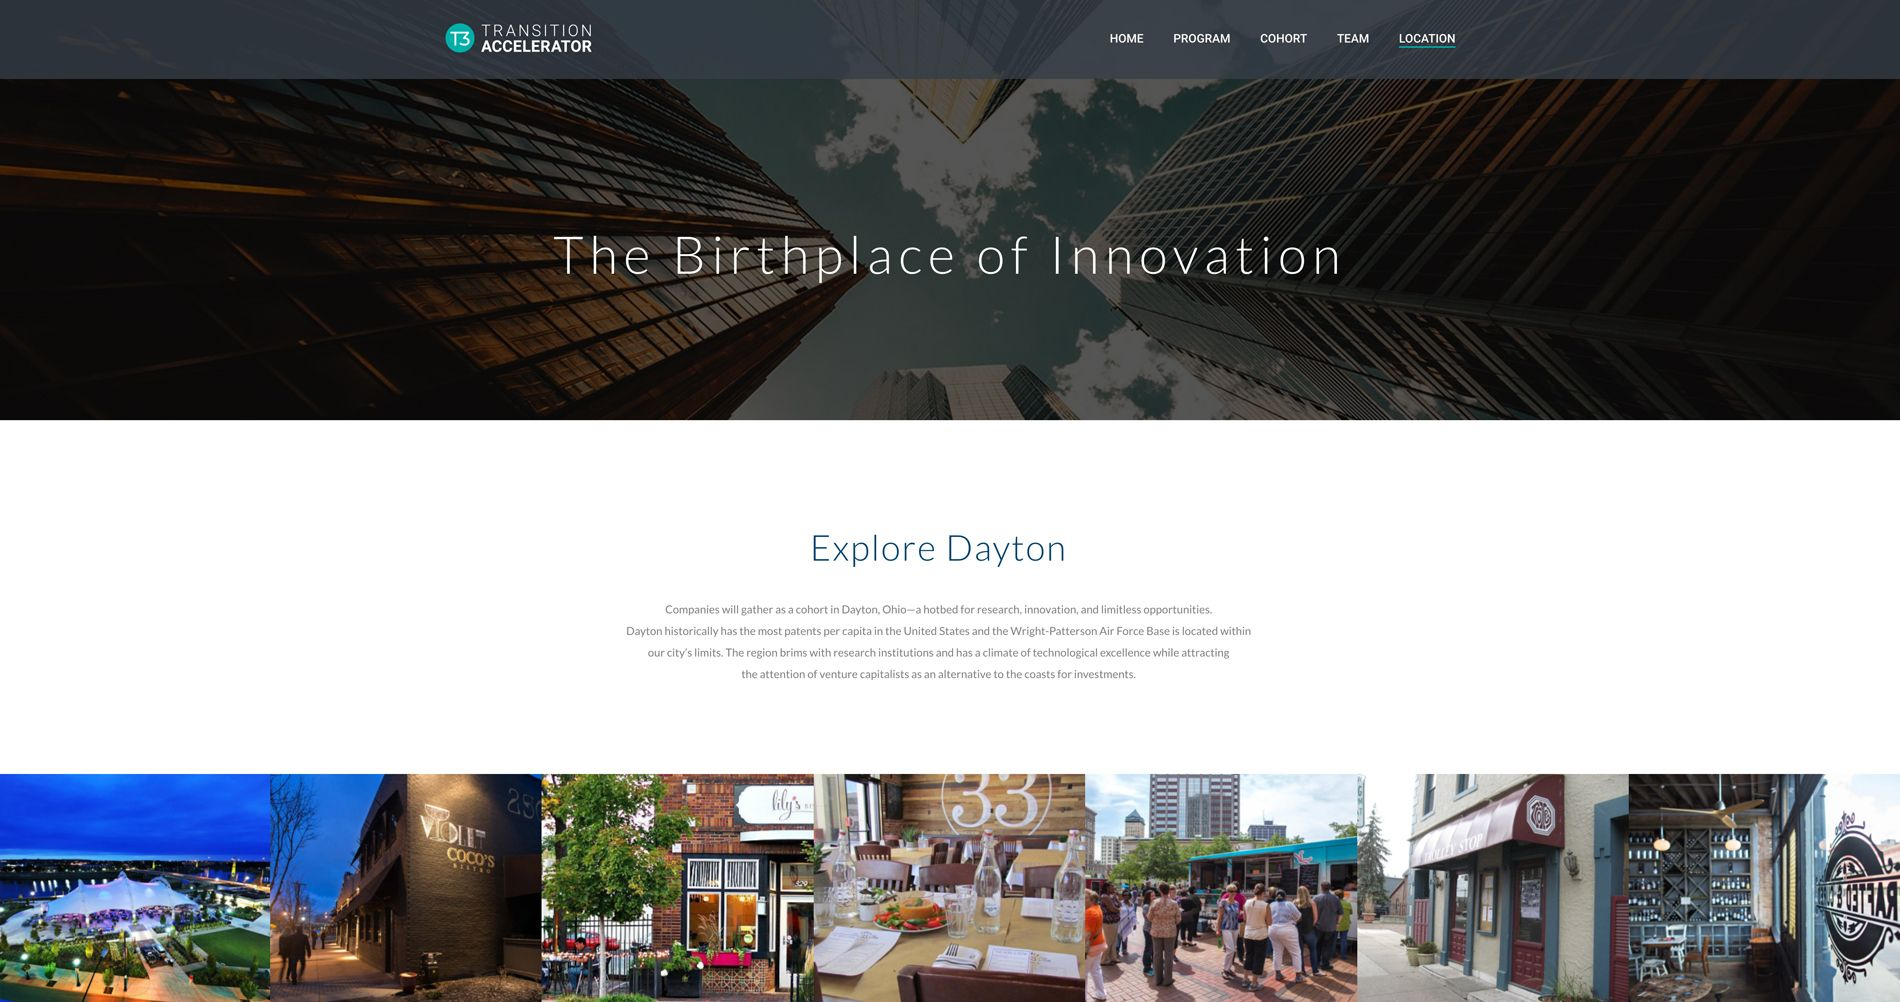 A screenshot of the location landing page